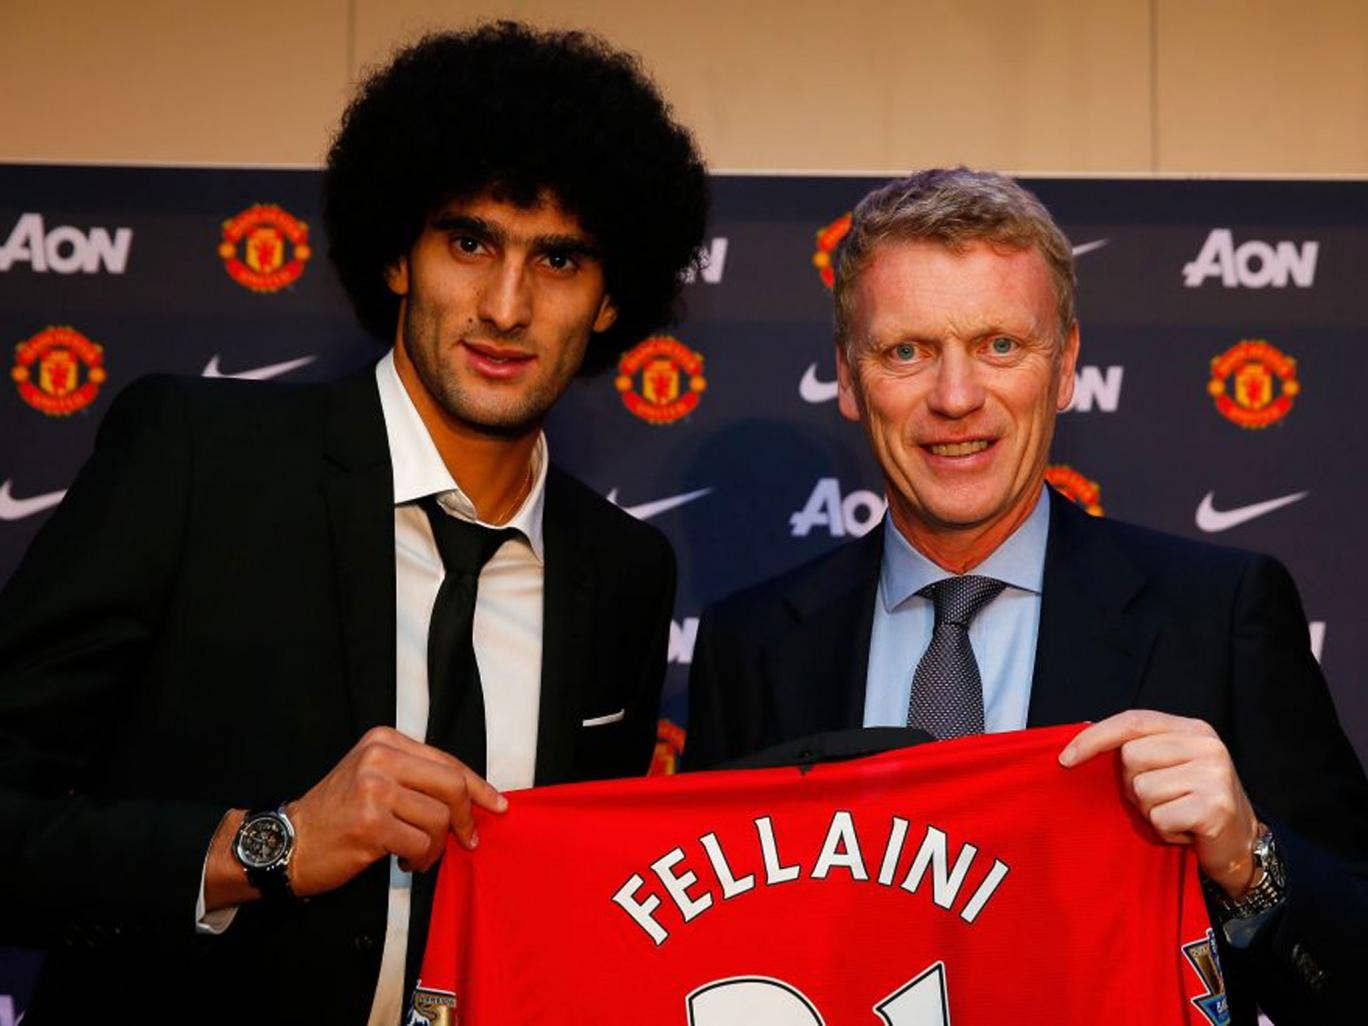 <p><strong>5. Marouane Fellaini (Man United, v C Palace, Saturday)</strong></p> <p>Manchester United's megastore can be expected to have a new range of Felli 'Fro wigs on show as they start recouping the £4m overpaid for the Belgian giant, D